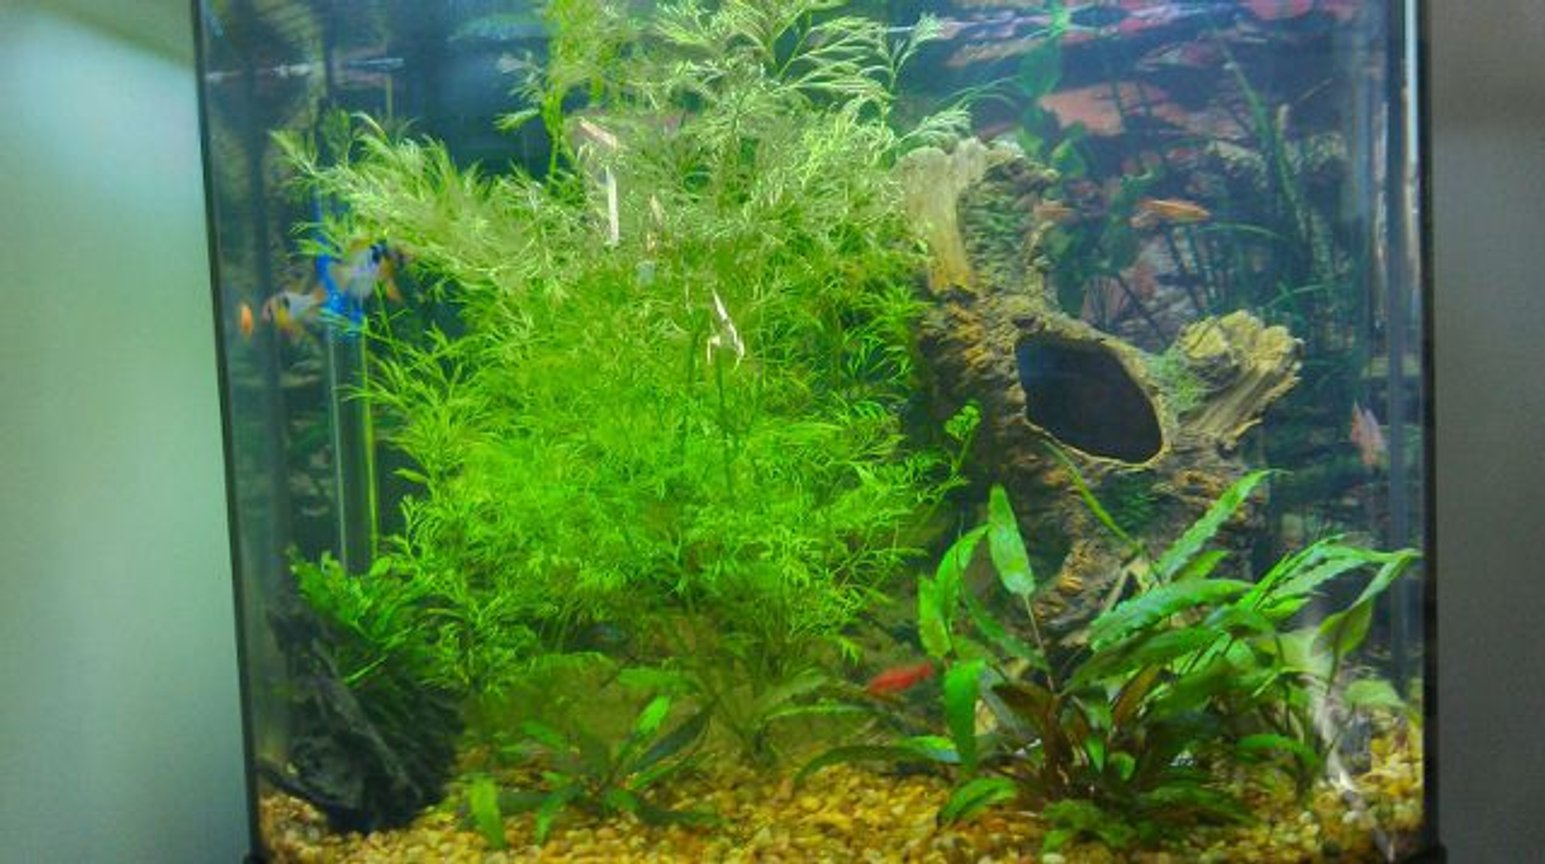 26 gallons planted tank (mostly live plants and fish) - Plants: Jave fern, water sprite and crypts Fish: Millennium rainbow Fish, 3 blue rams, 8 cherry barbs, 1 african butterfly fish, 1 driftwood, 1 fake tree stump 26 gallon bow front